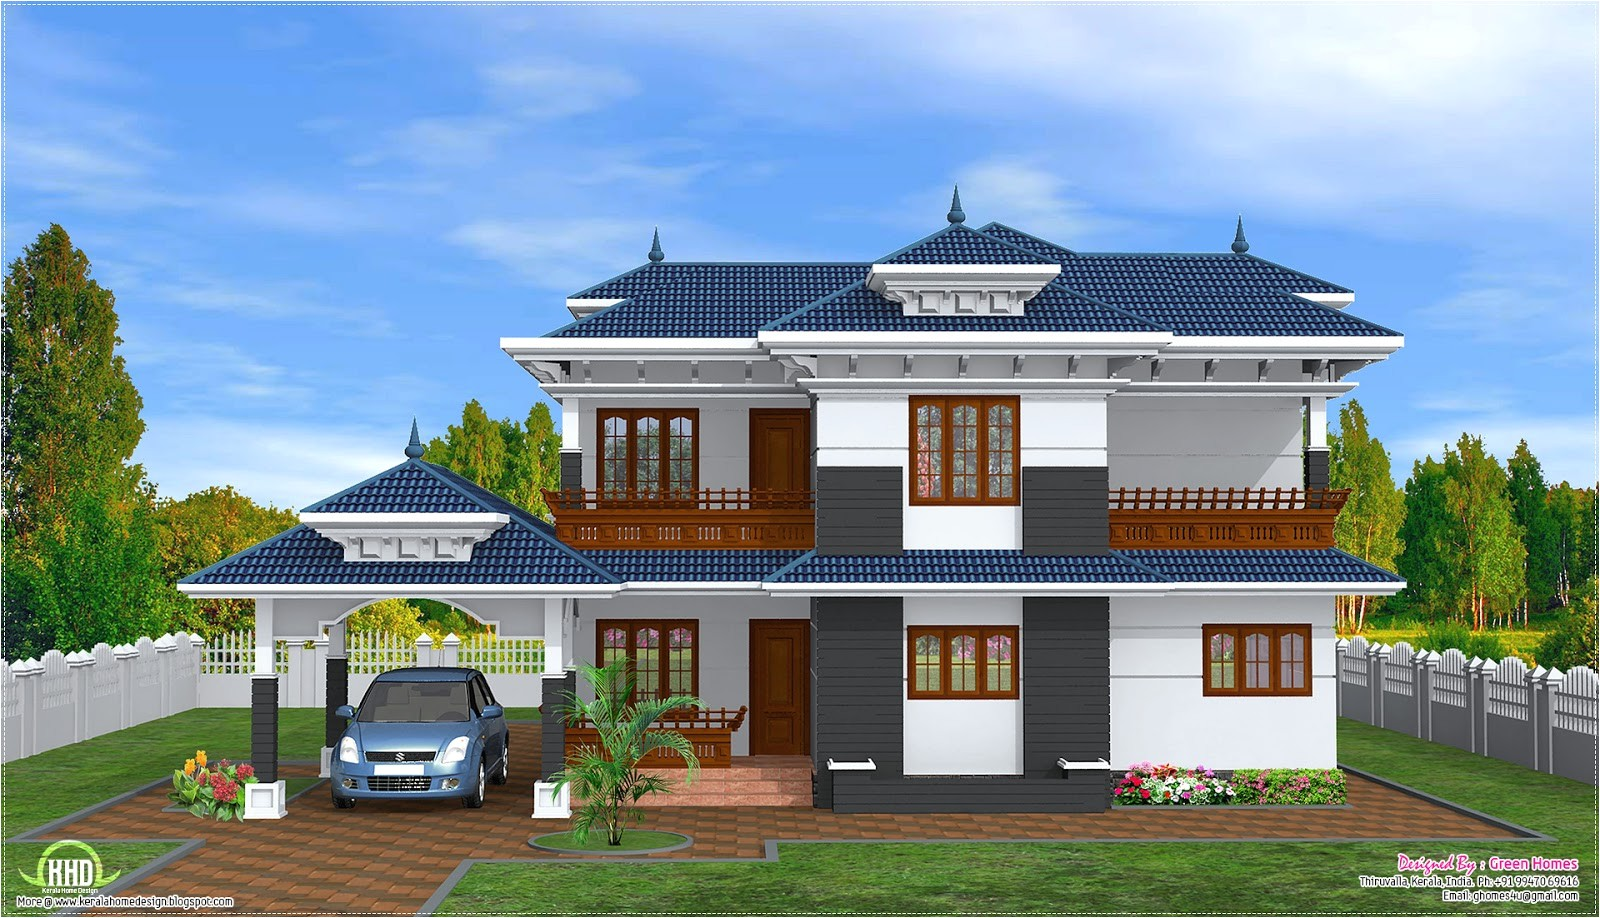 Home Designs and Plans February 2013 Kerala Home Design and Floor Plans